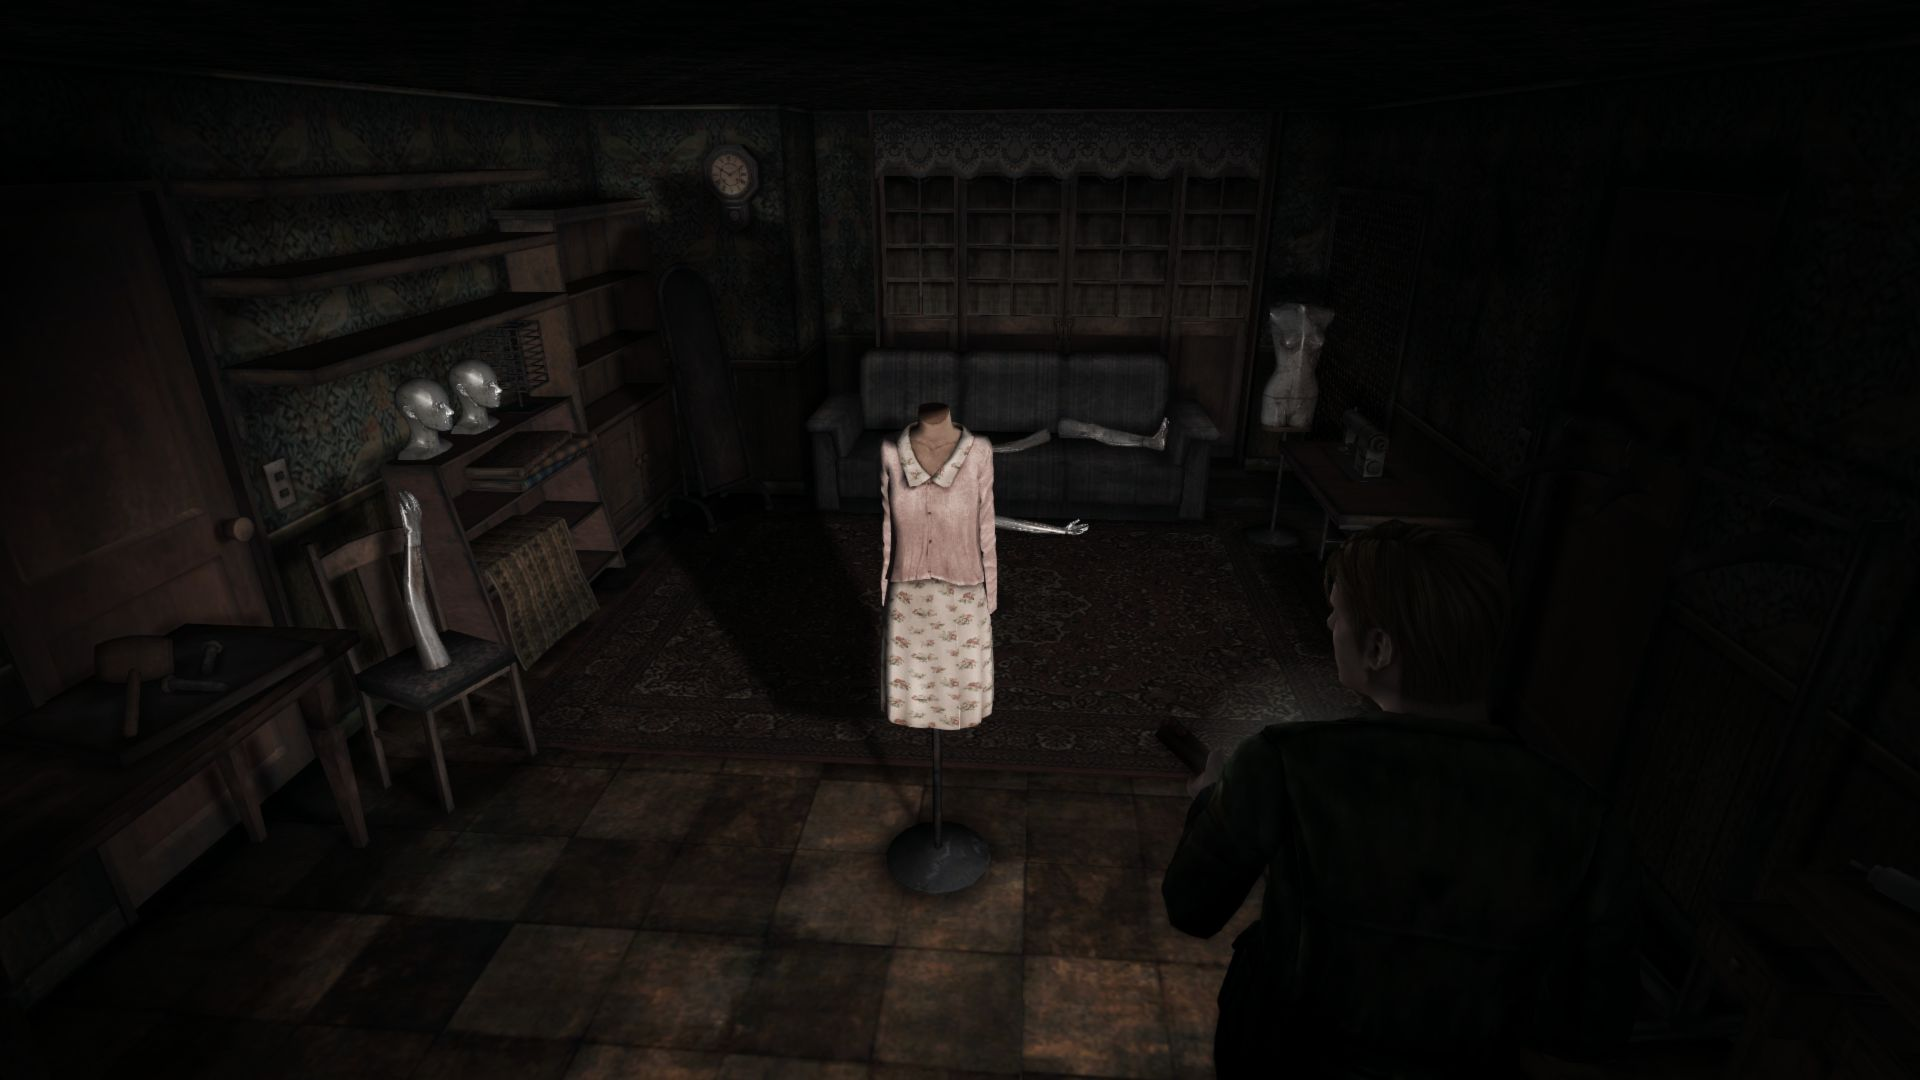 Silent Hill 2 Enhanced Edition Updates With Fixes To Shadows